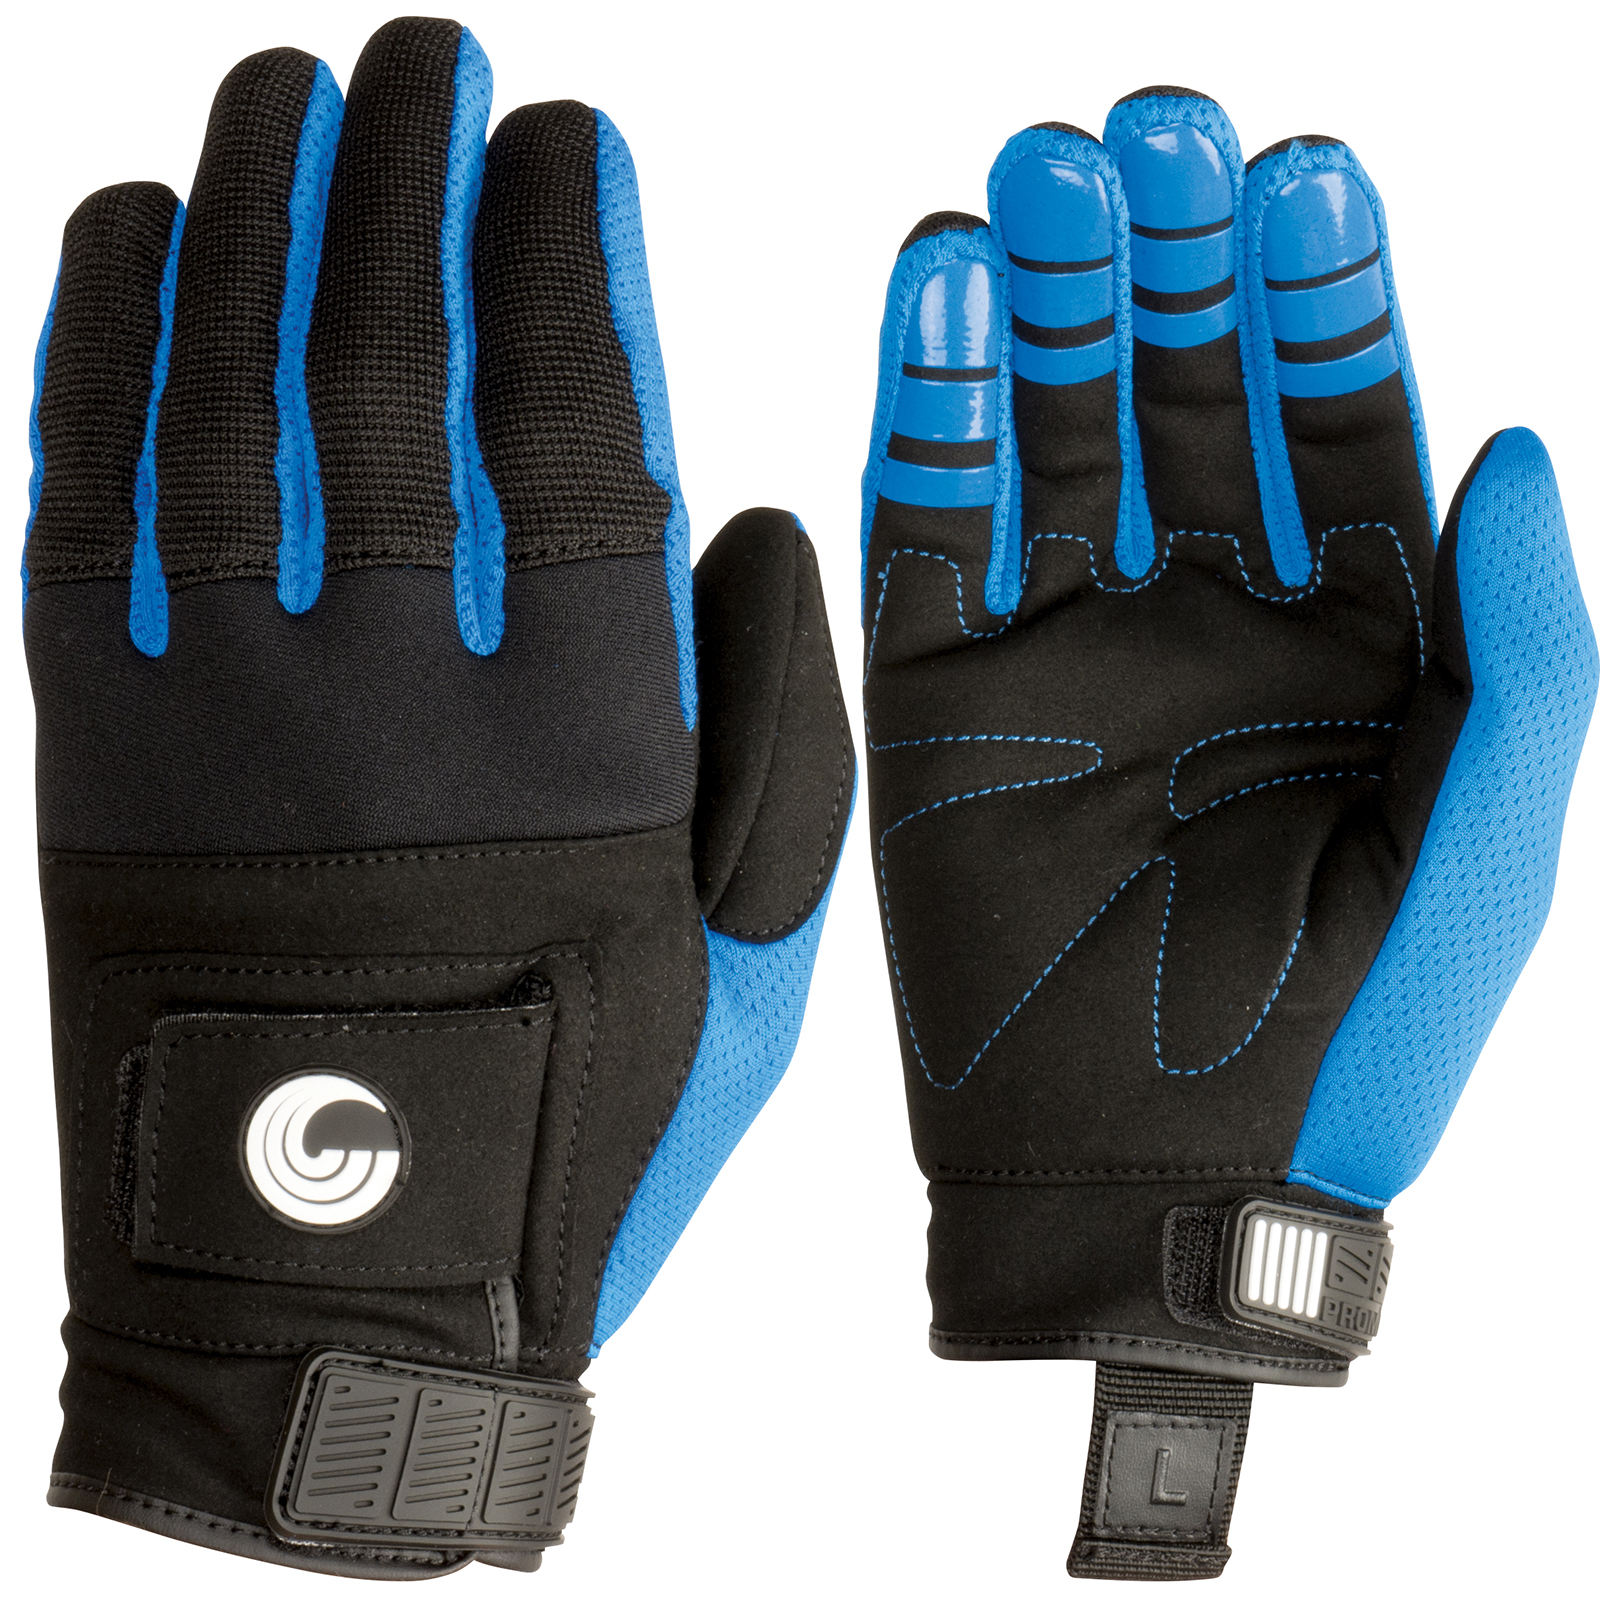 PROMO GLOVE CONNELLY 2019